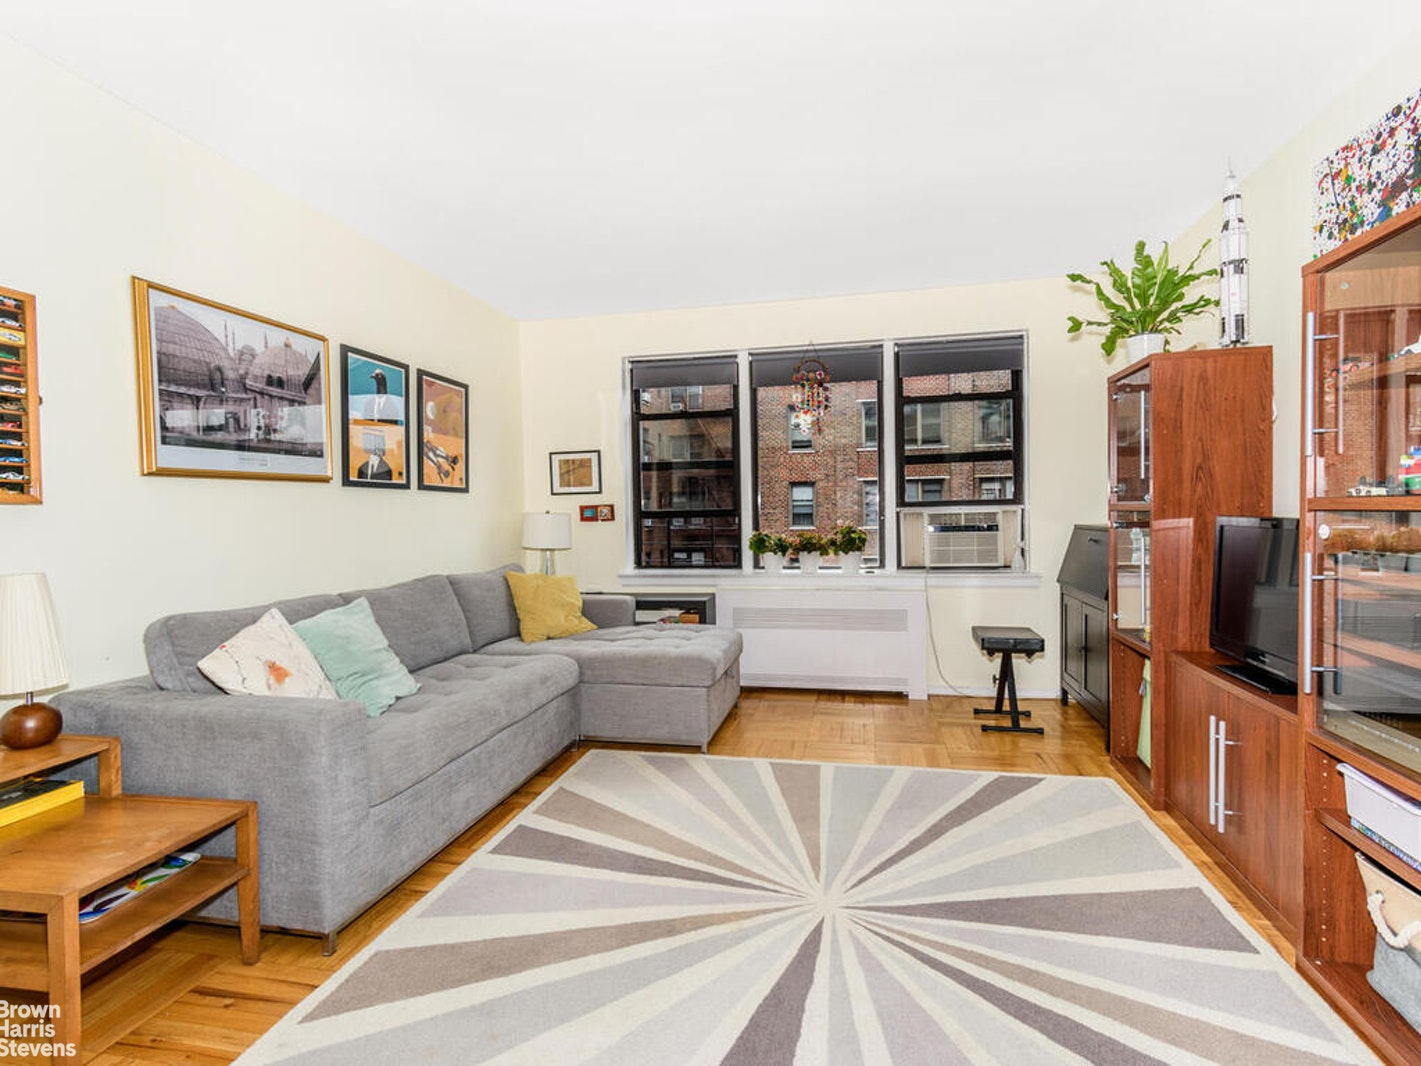 Apartment for sale at 640 West 239th Street, Apt 4C